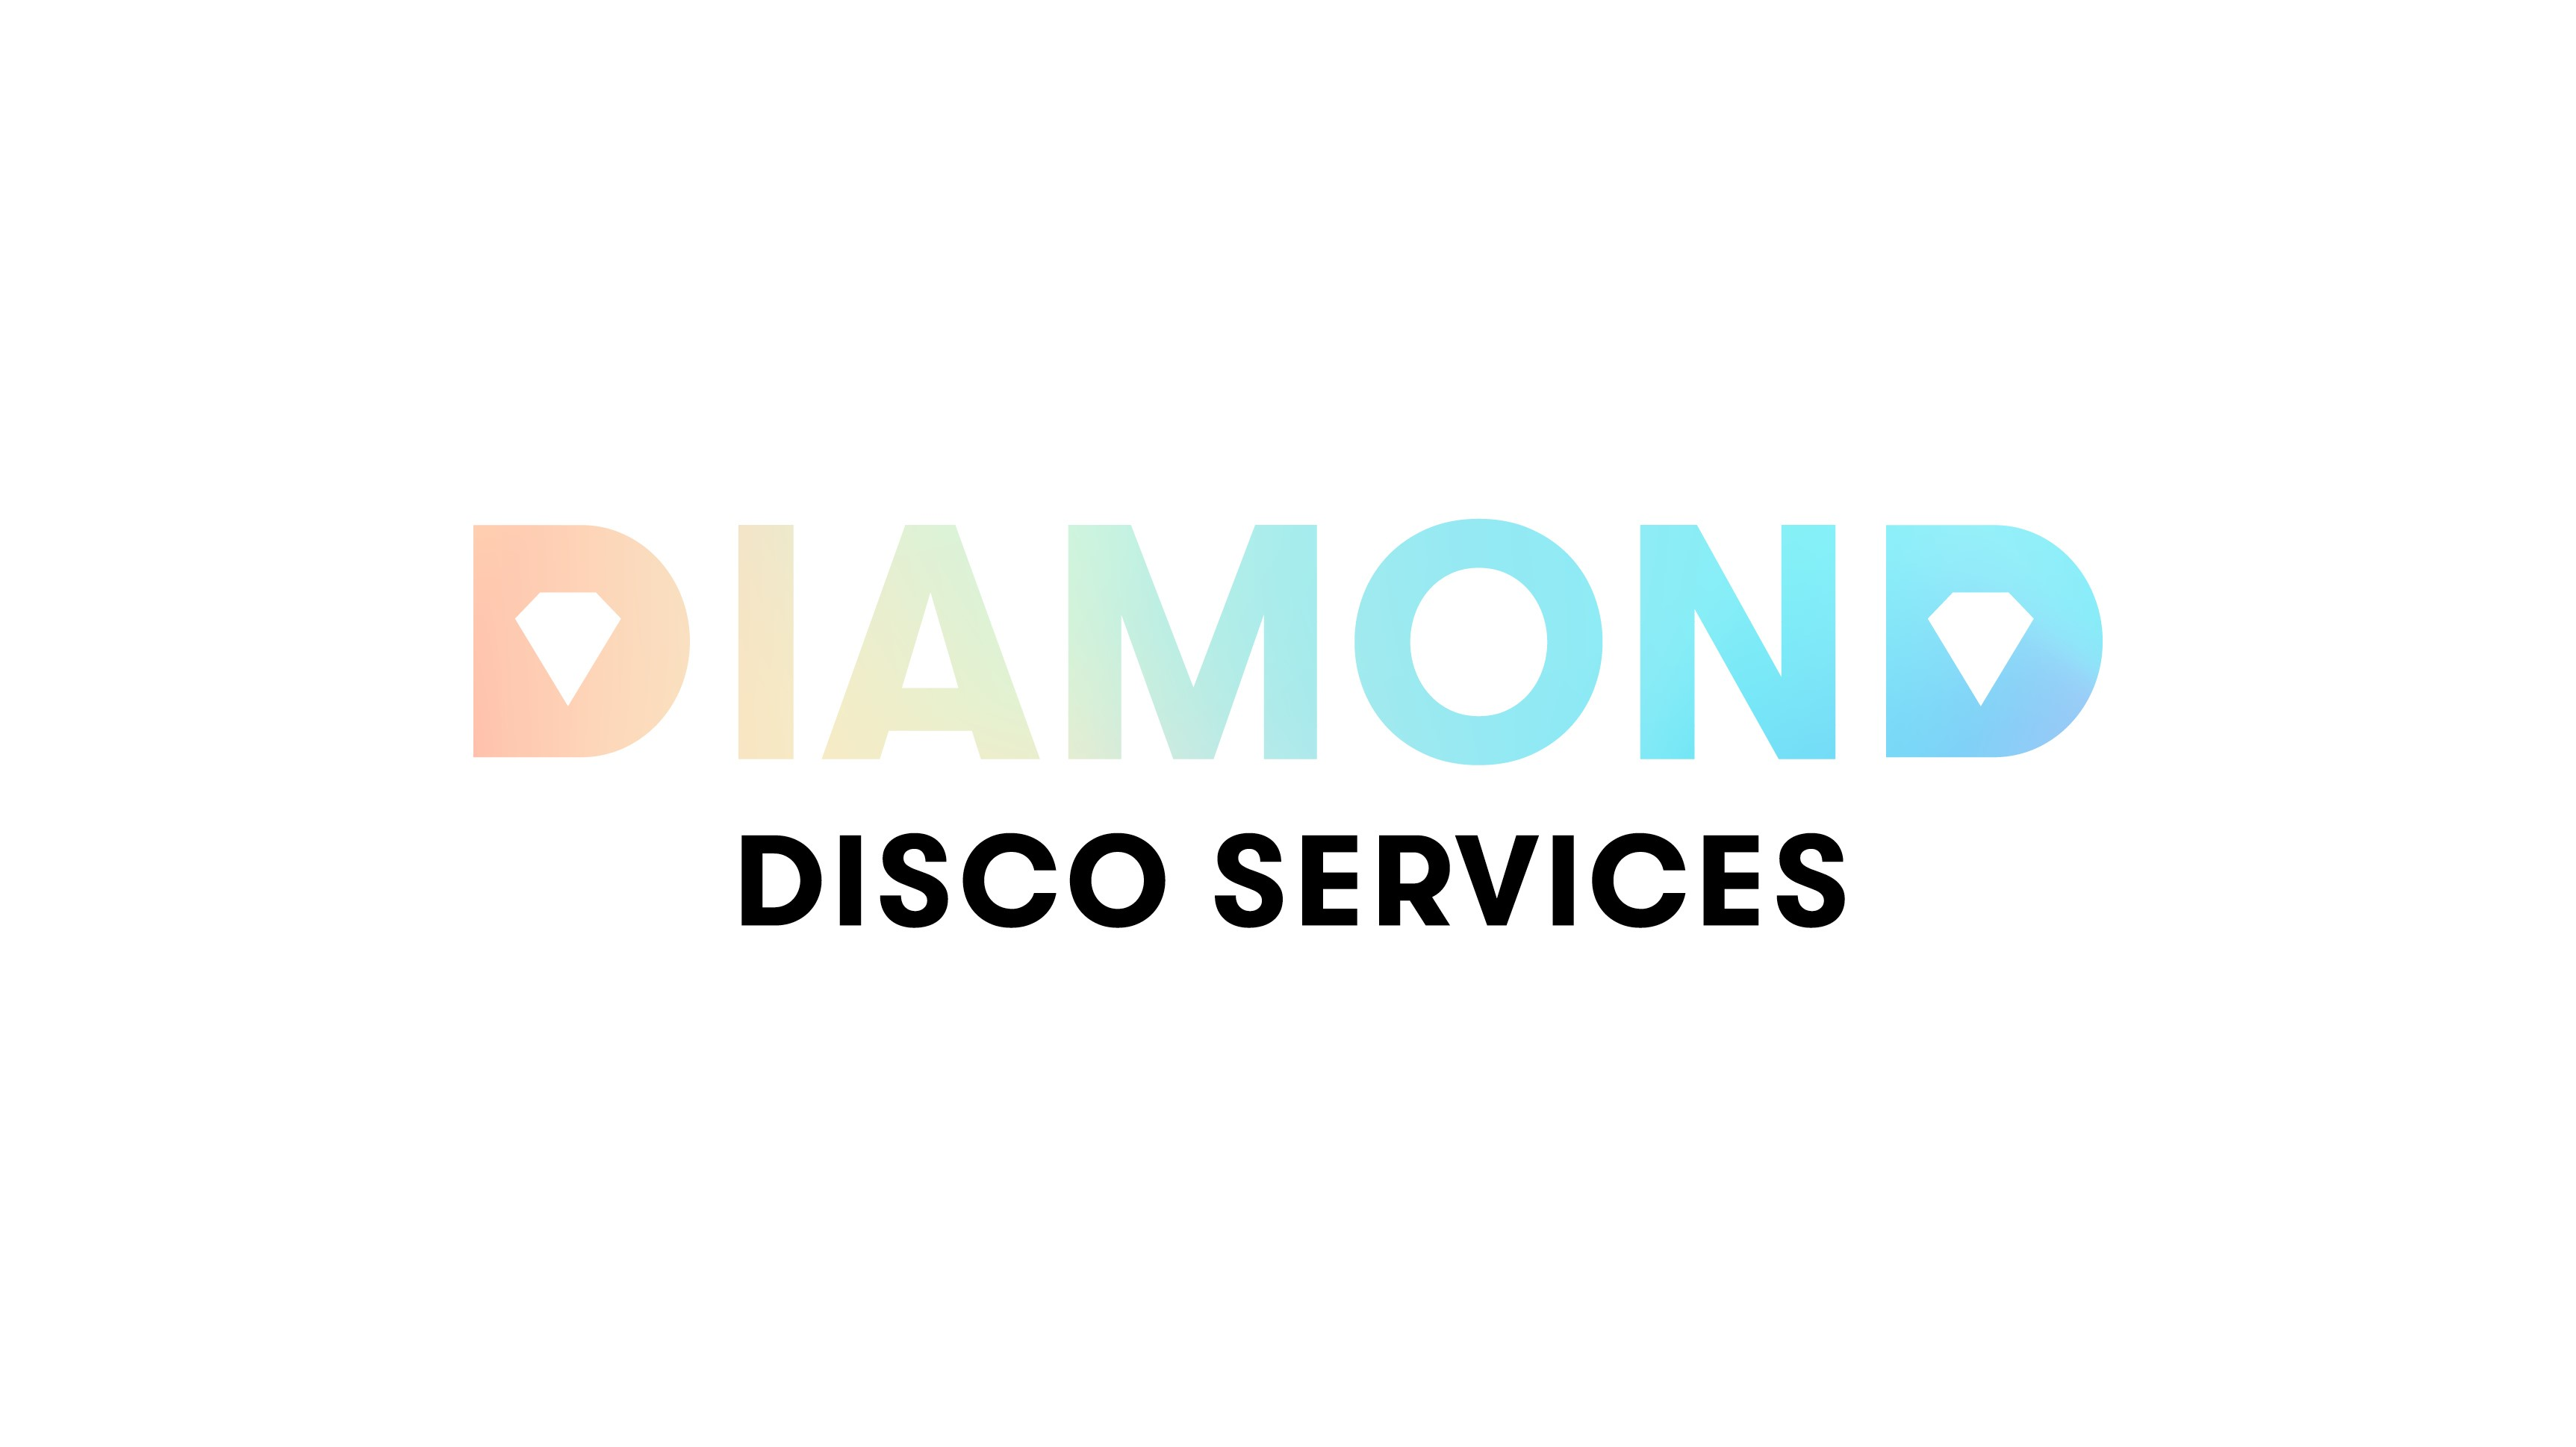 Diamond Disco Services